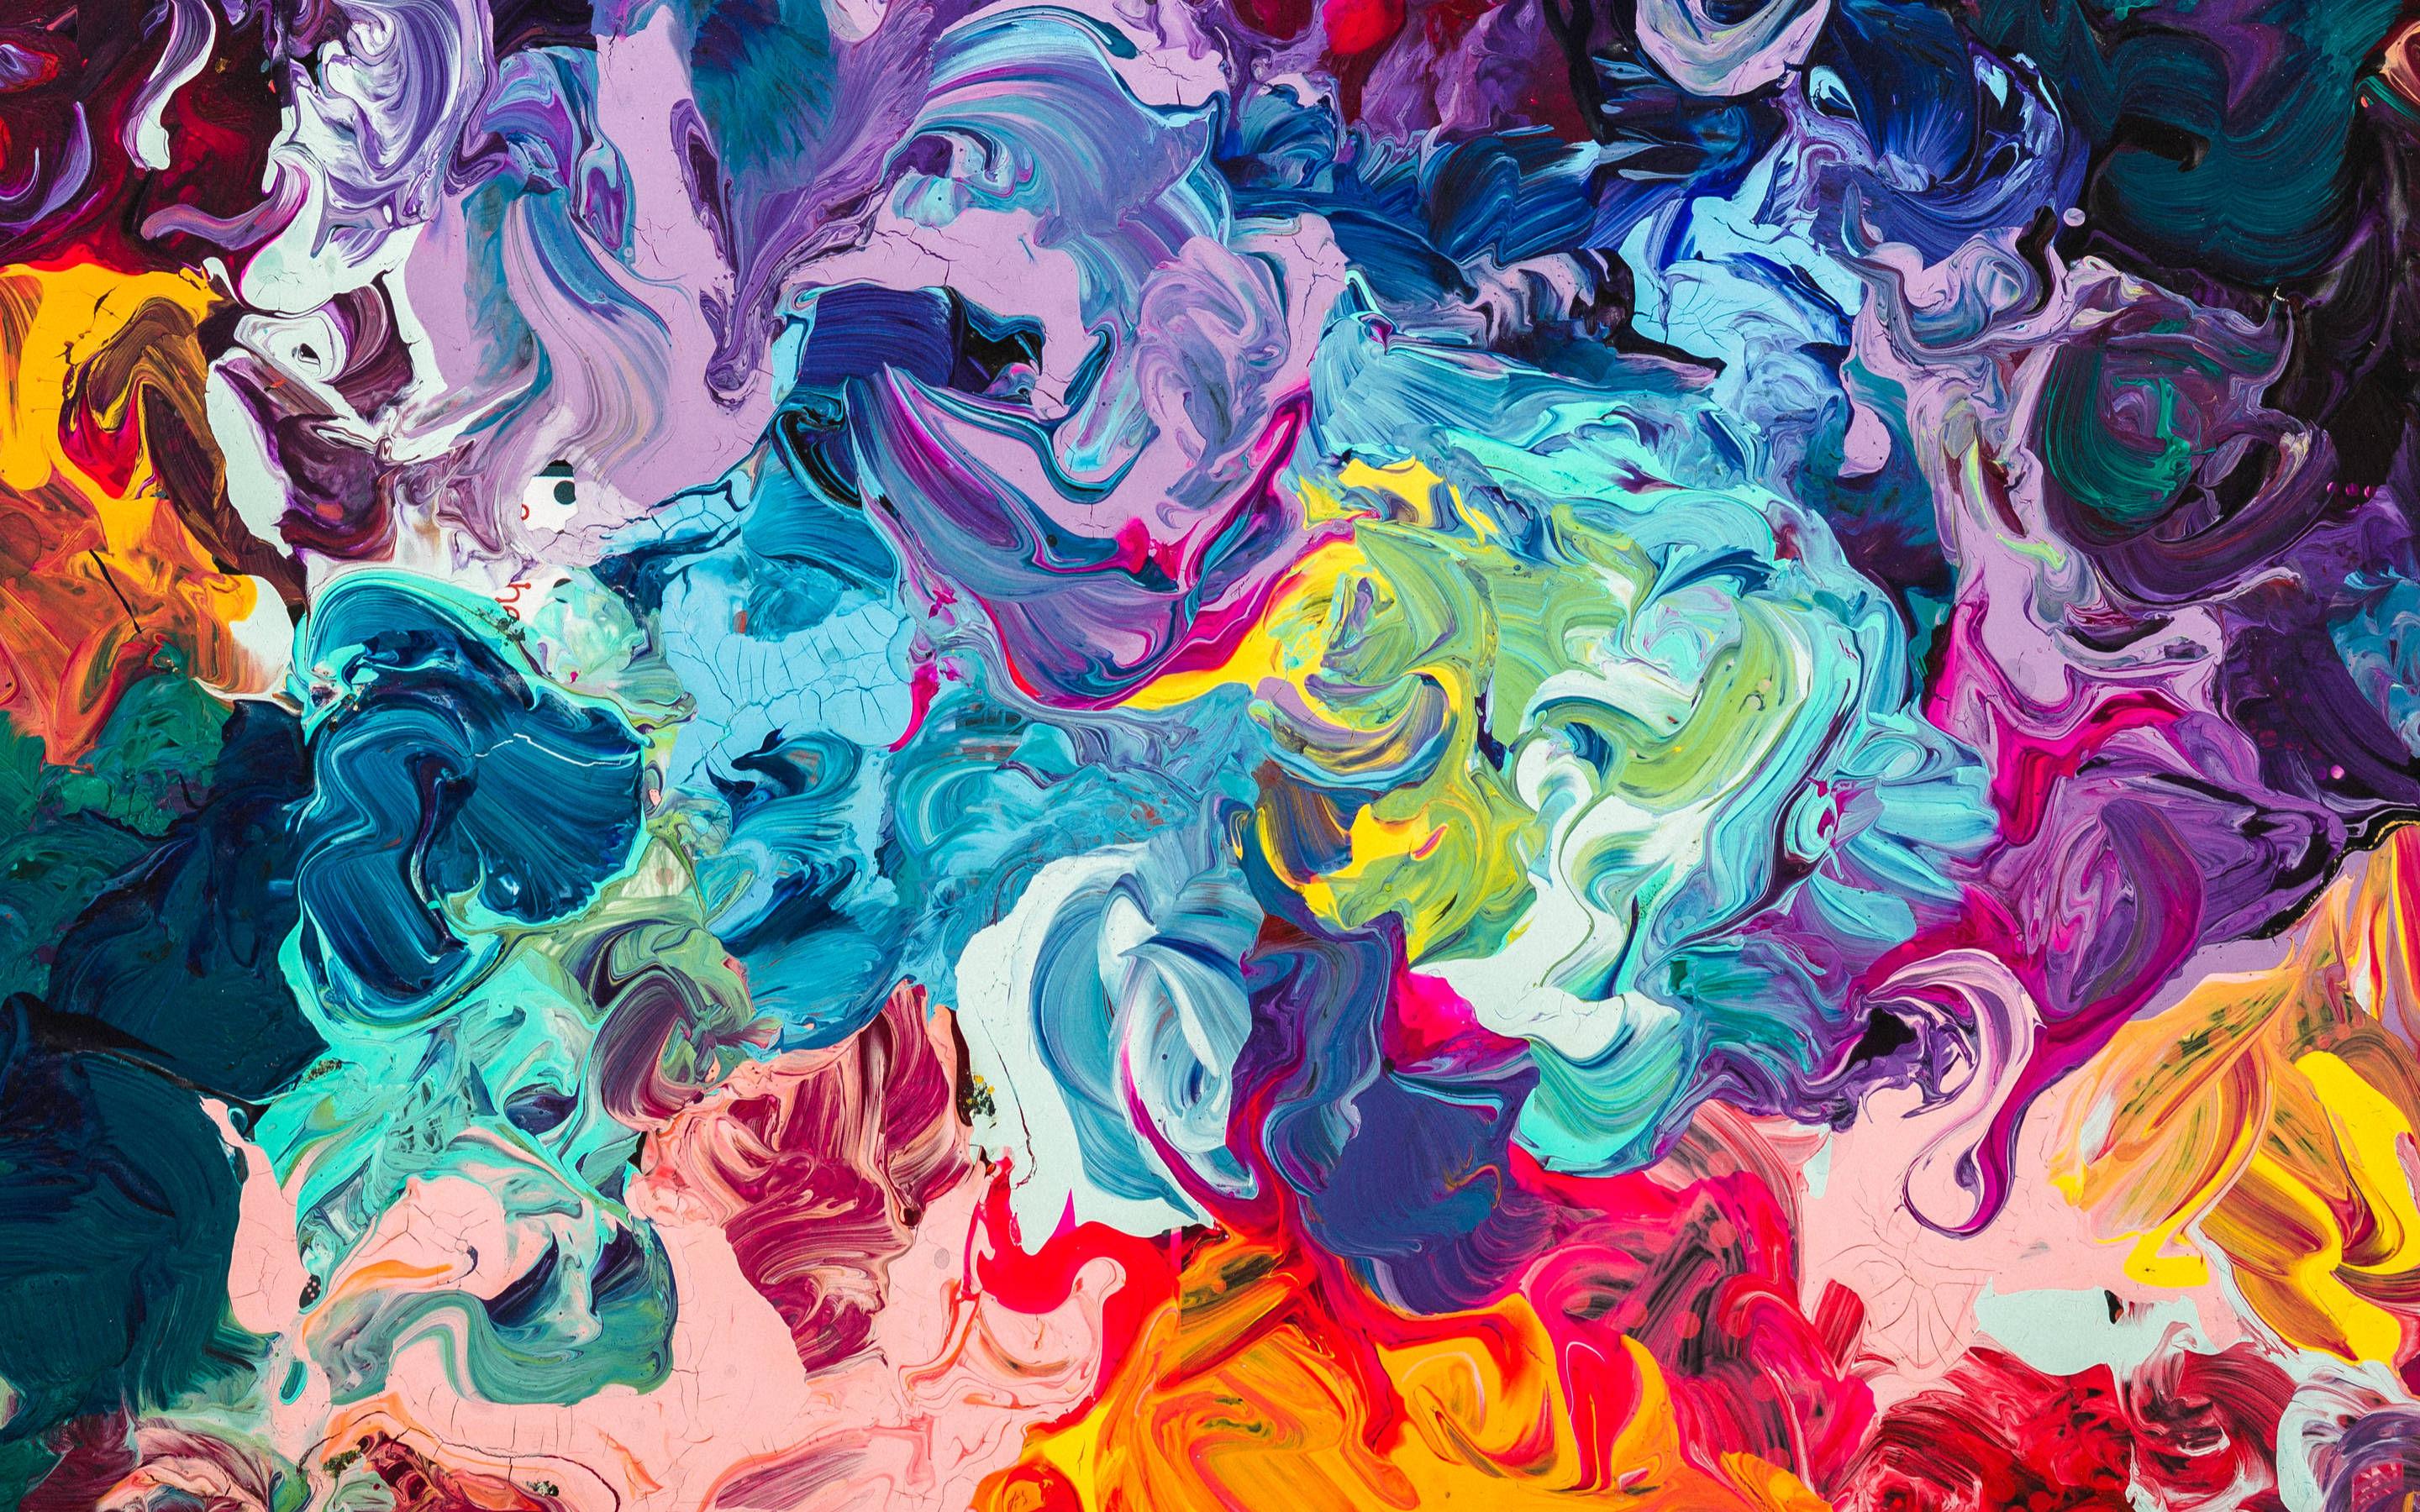 Guide to Color in Design: Color Meaning, Color Theory, and More